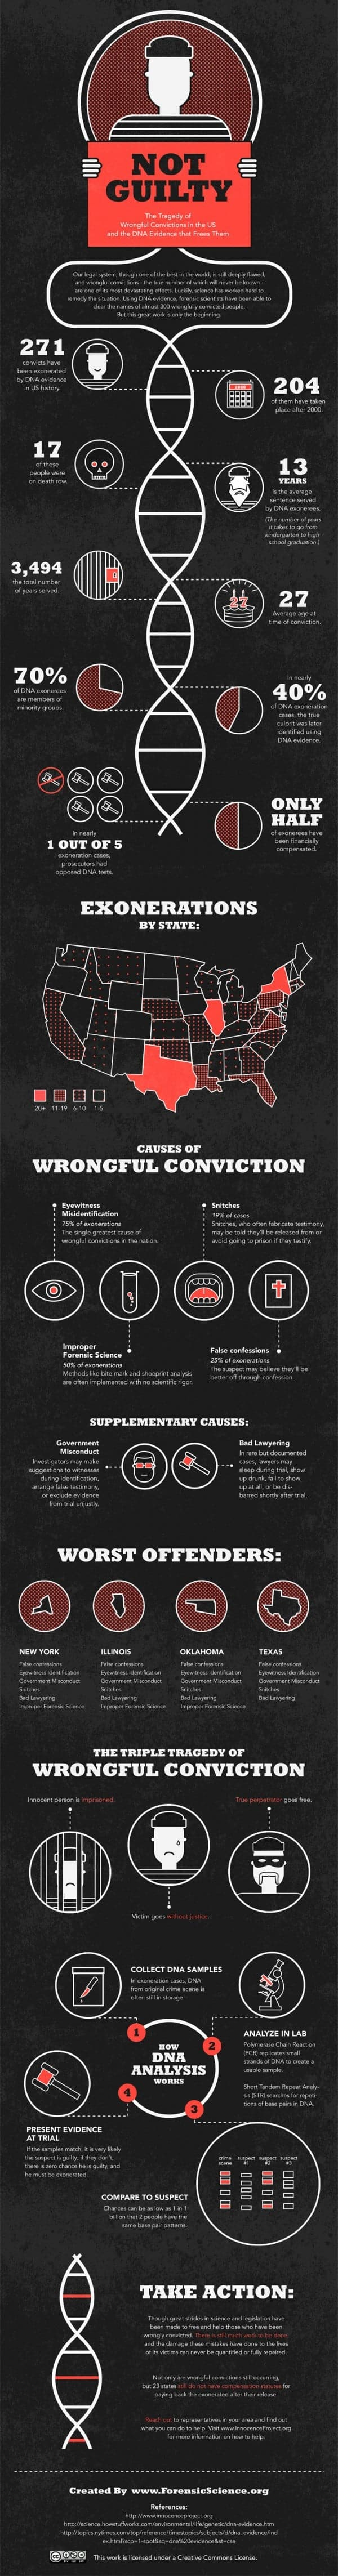 Imperfections of the U.S. Judicial System